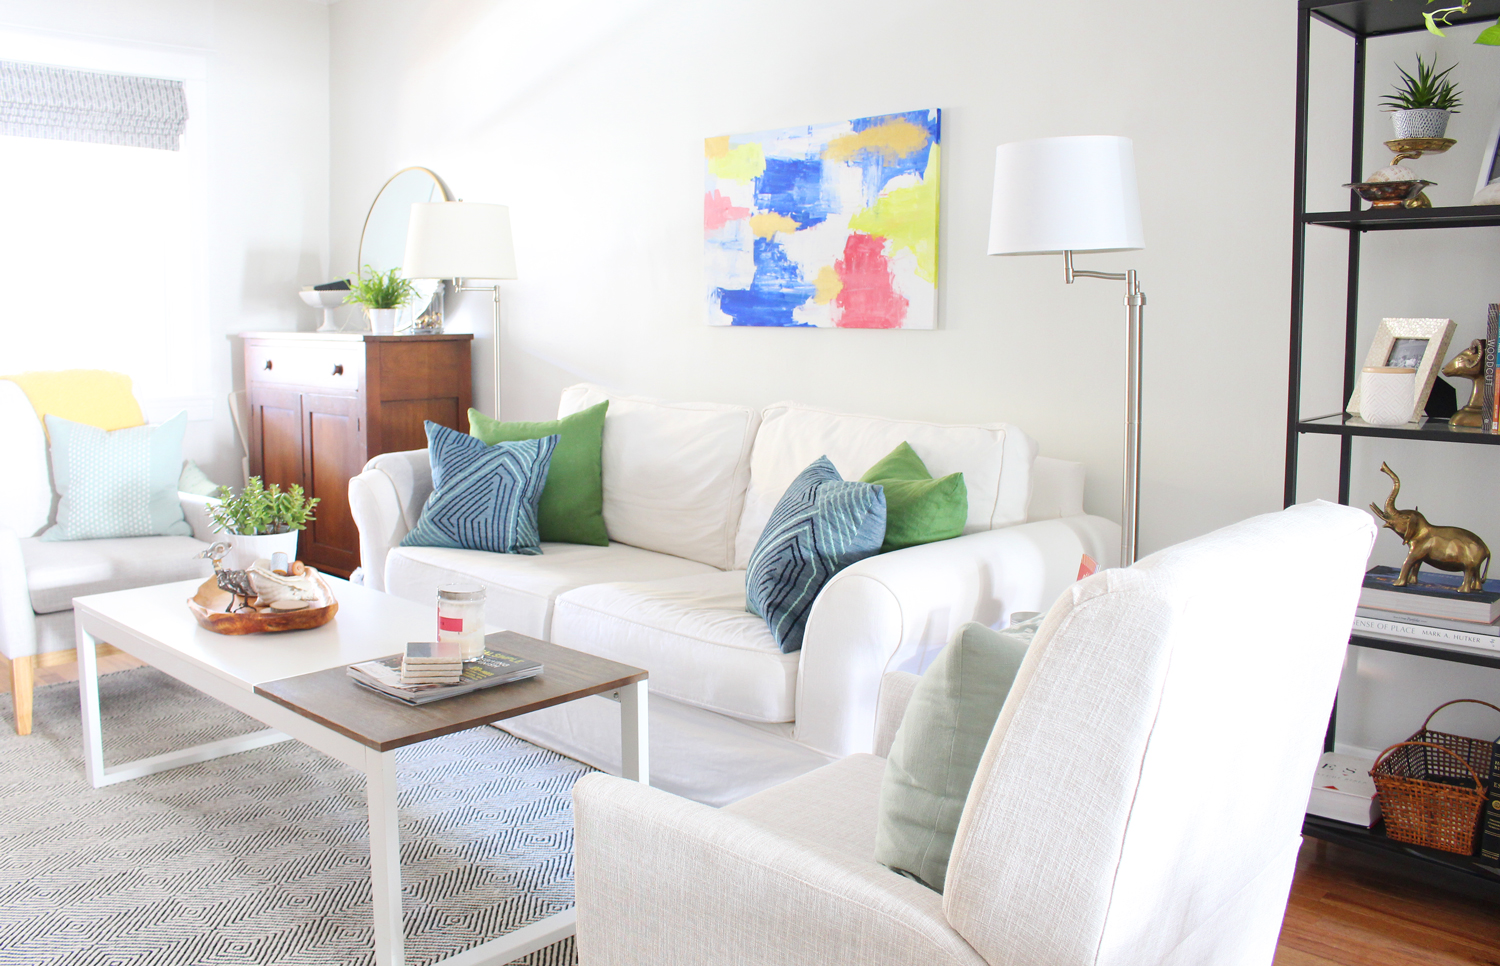 Mix & Match Design Company's eclectic modern living room.